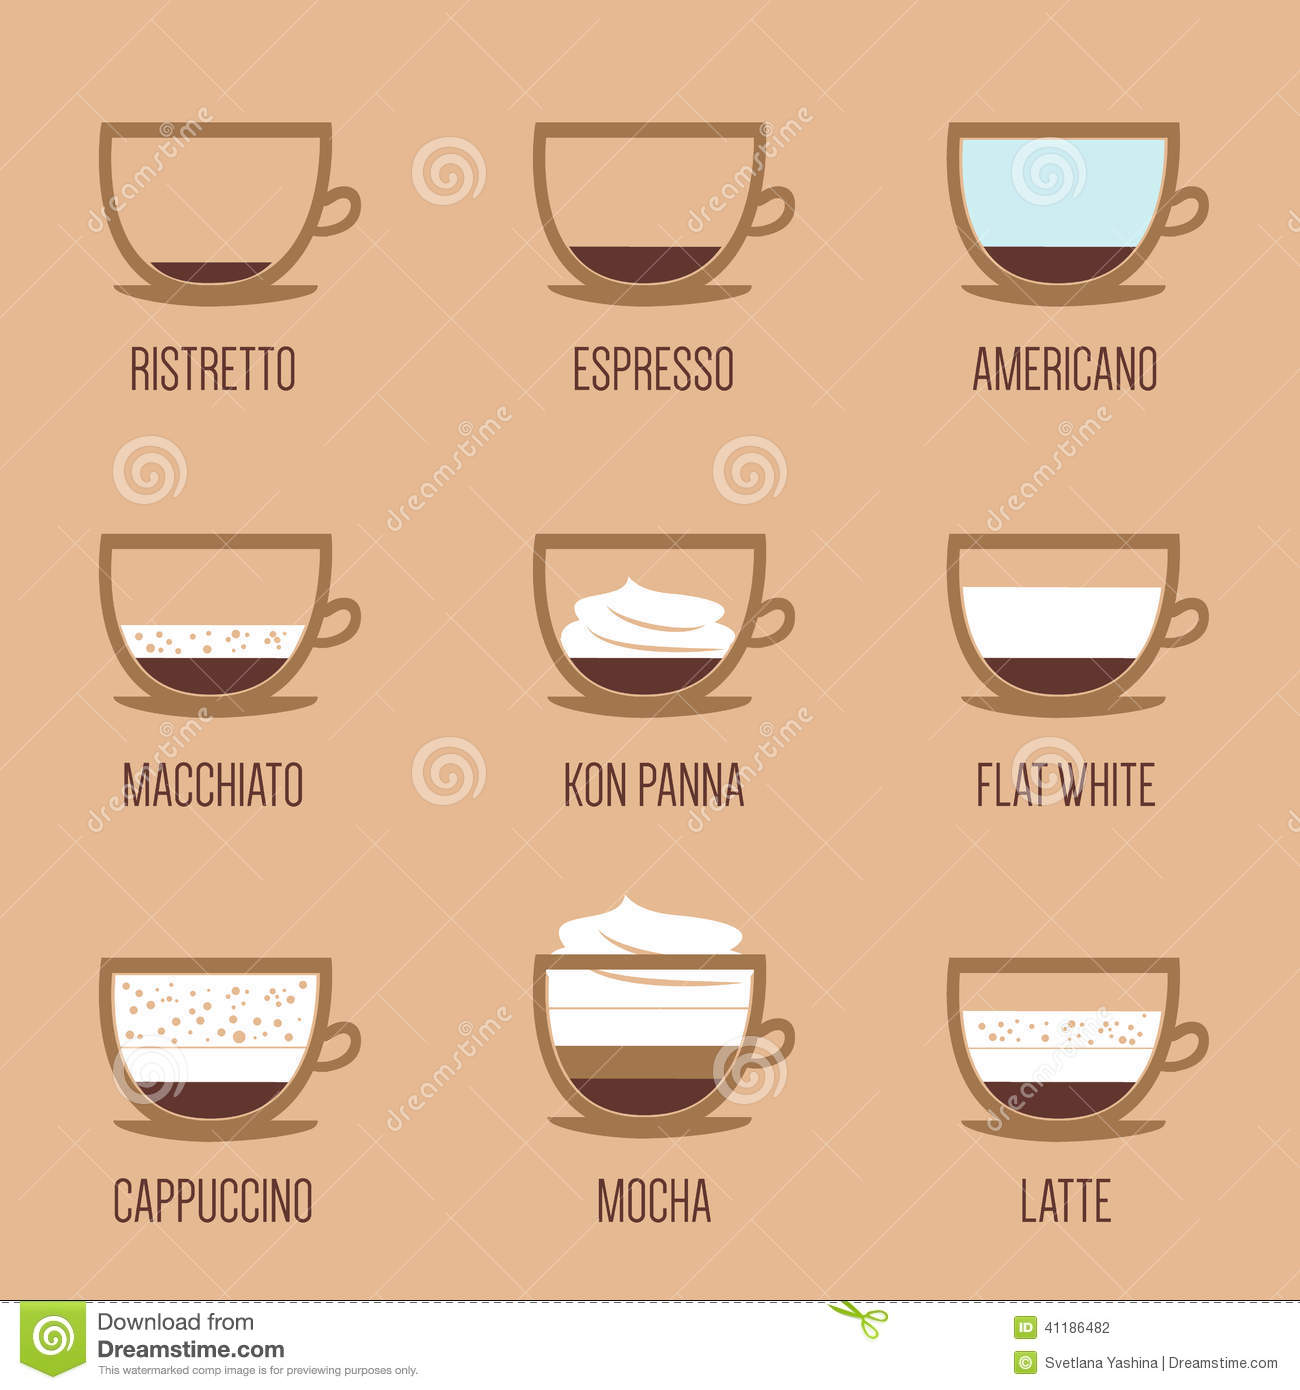 coffee-infographic-type-elements-sample-